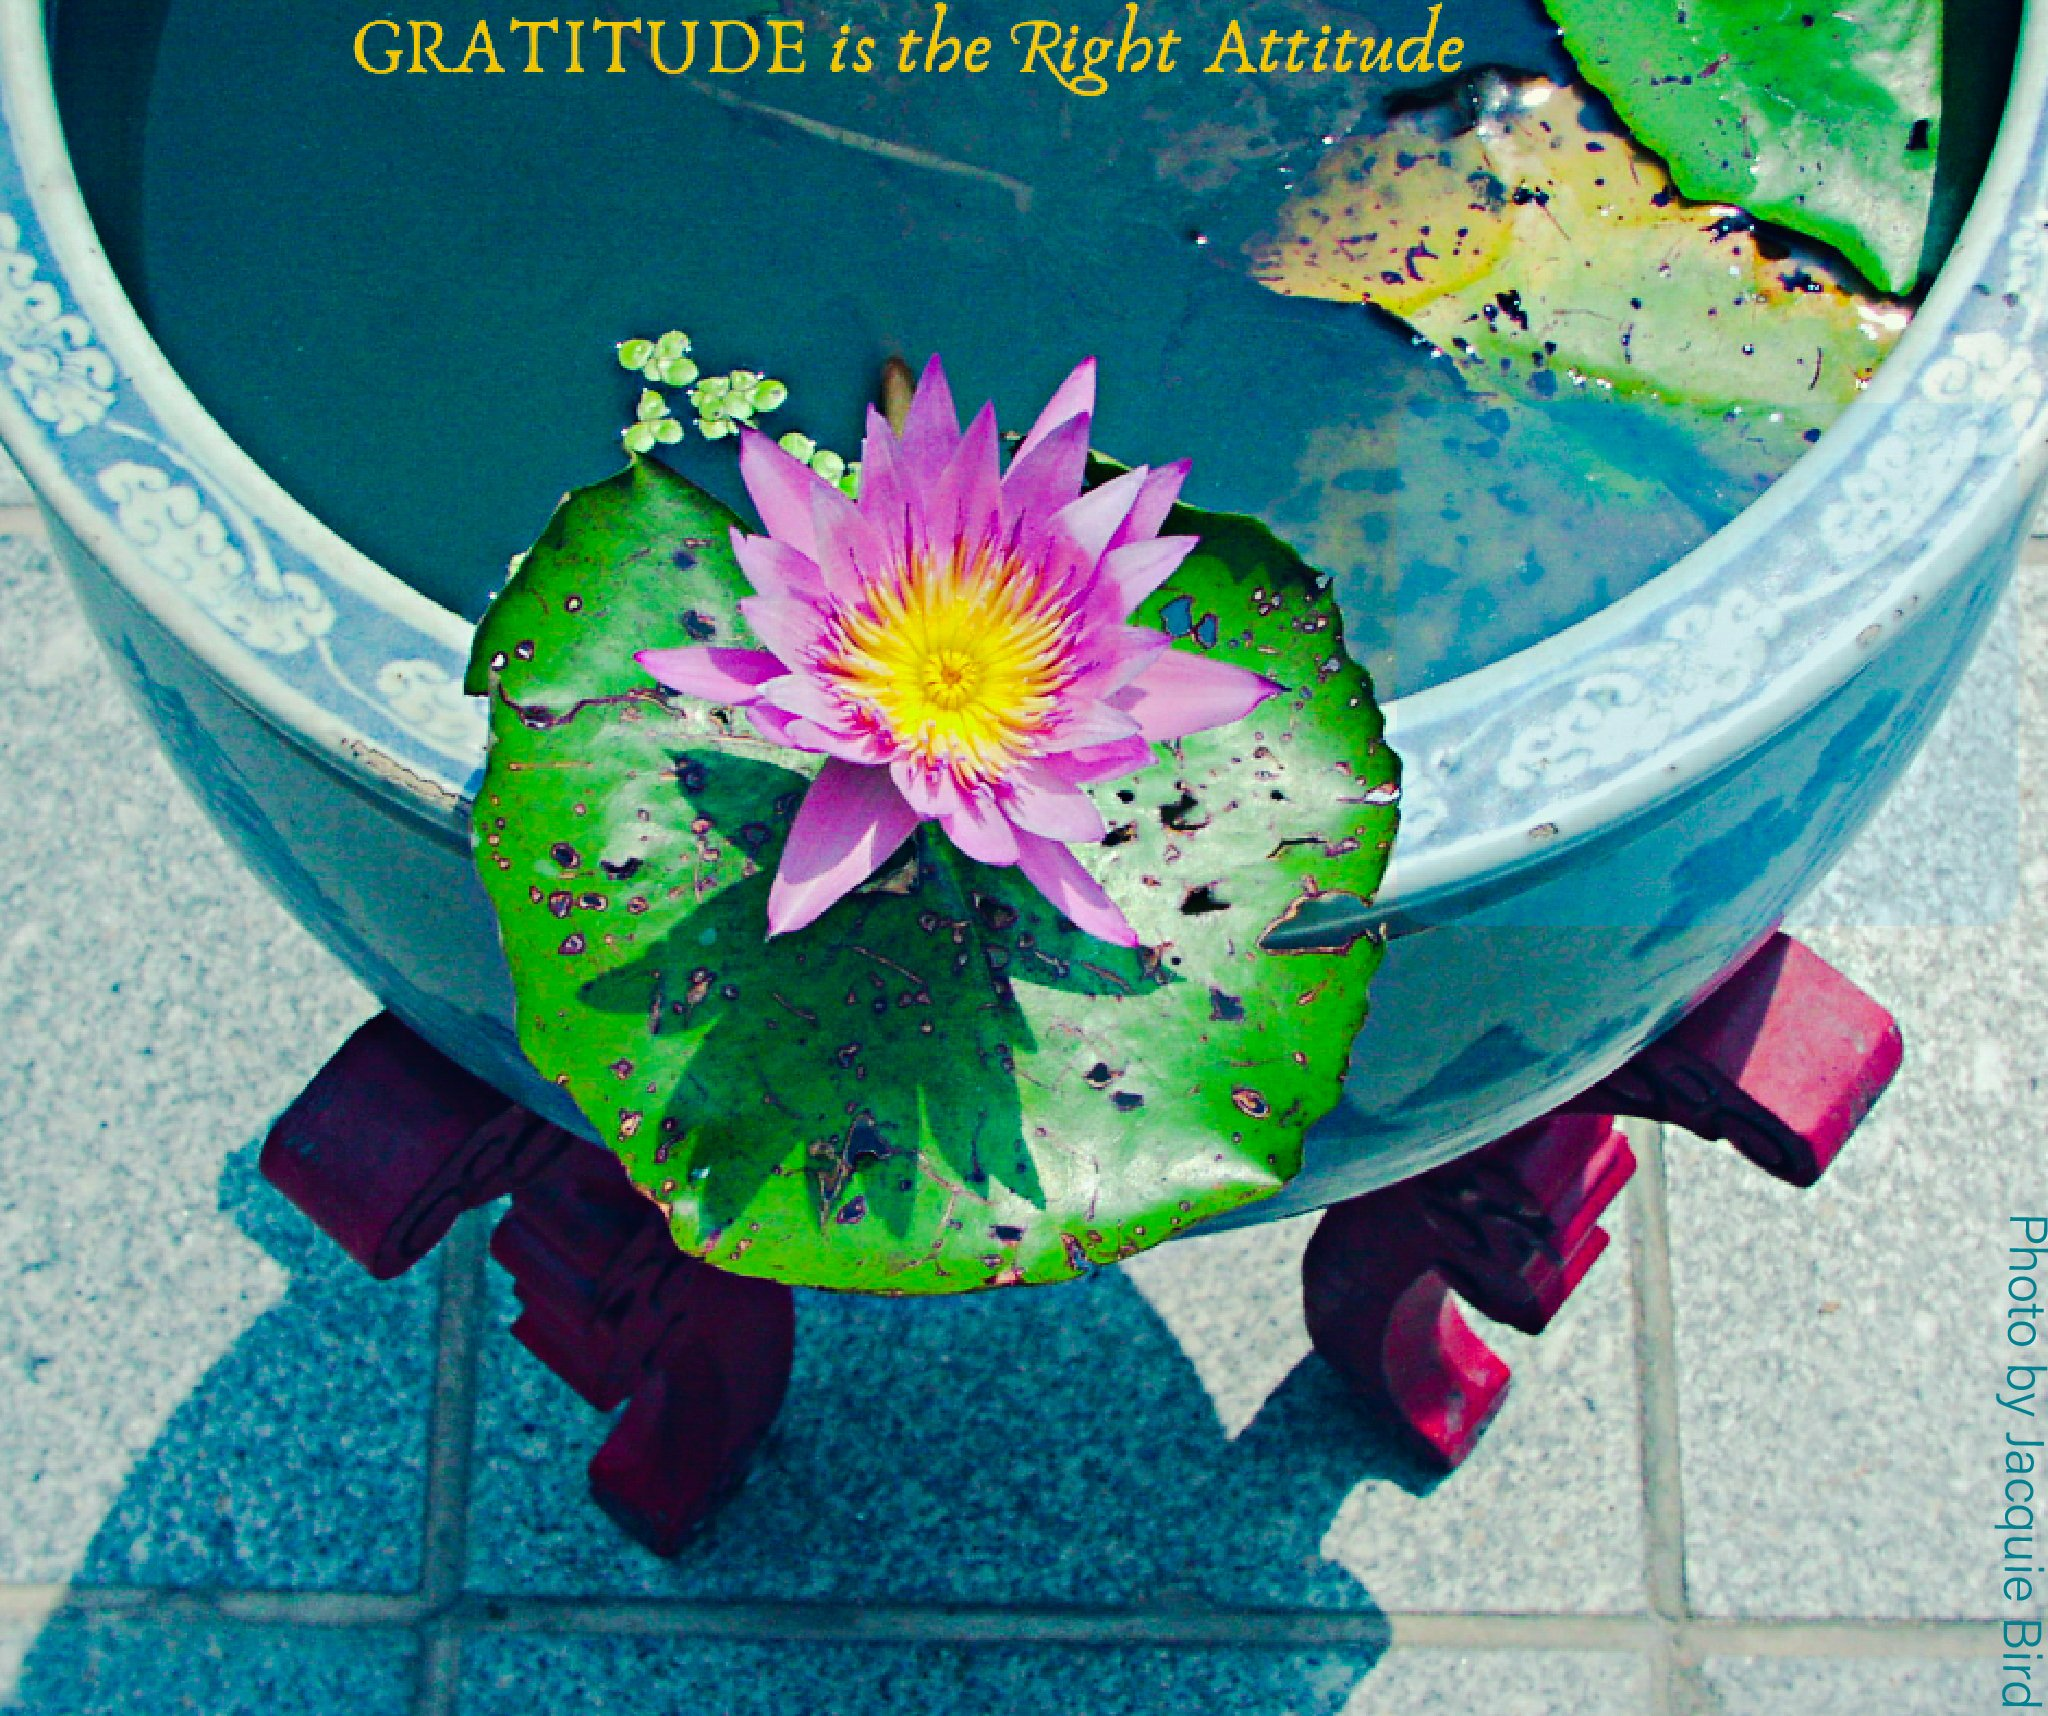 Gratitude is the right attitude by Jacquie Bird, Spiritual Wellness